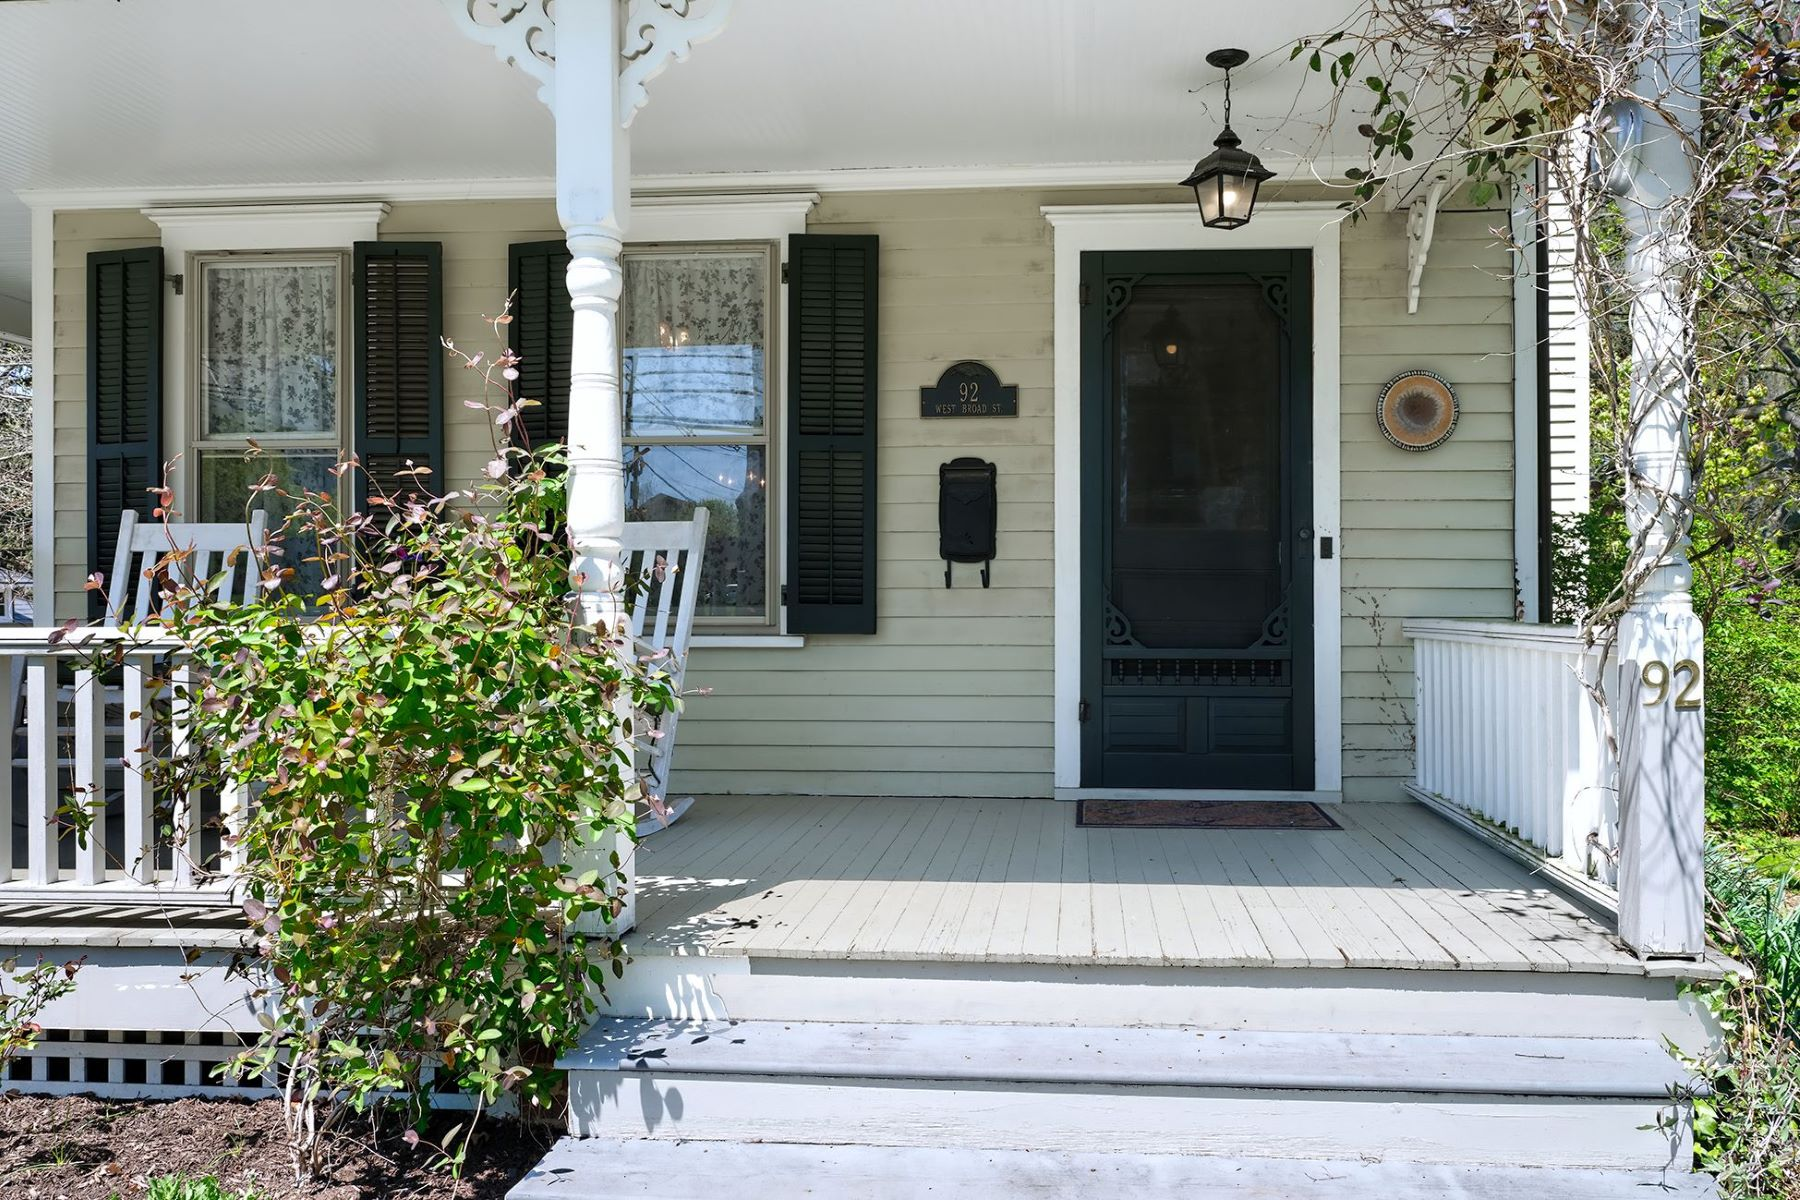 Additional photo for property listing at Charming Victorian 92 West Broad Street, Hopewell, New Jersey 08525 United States